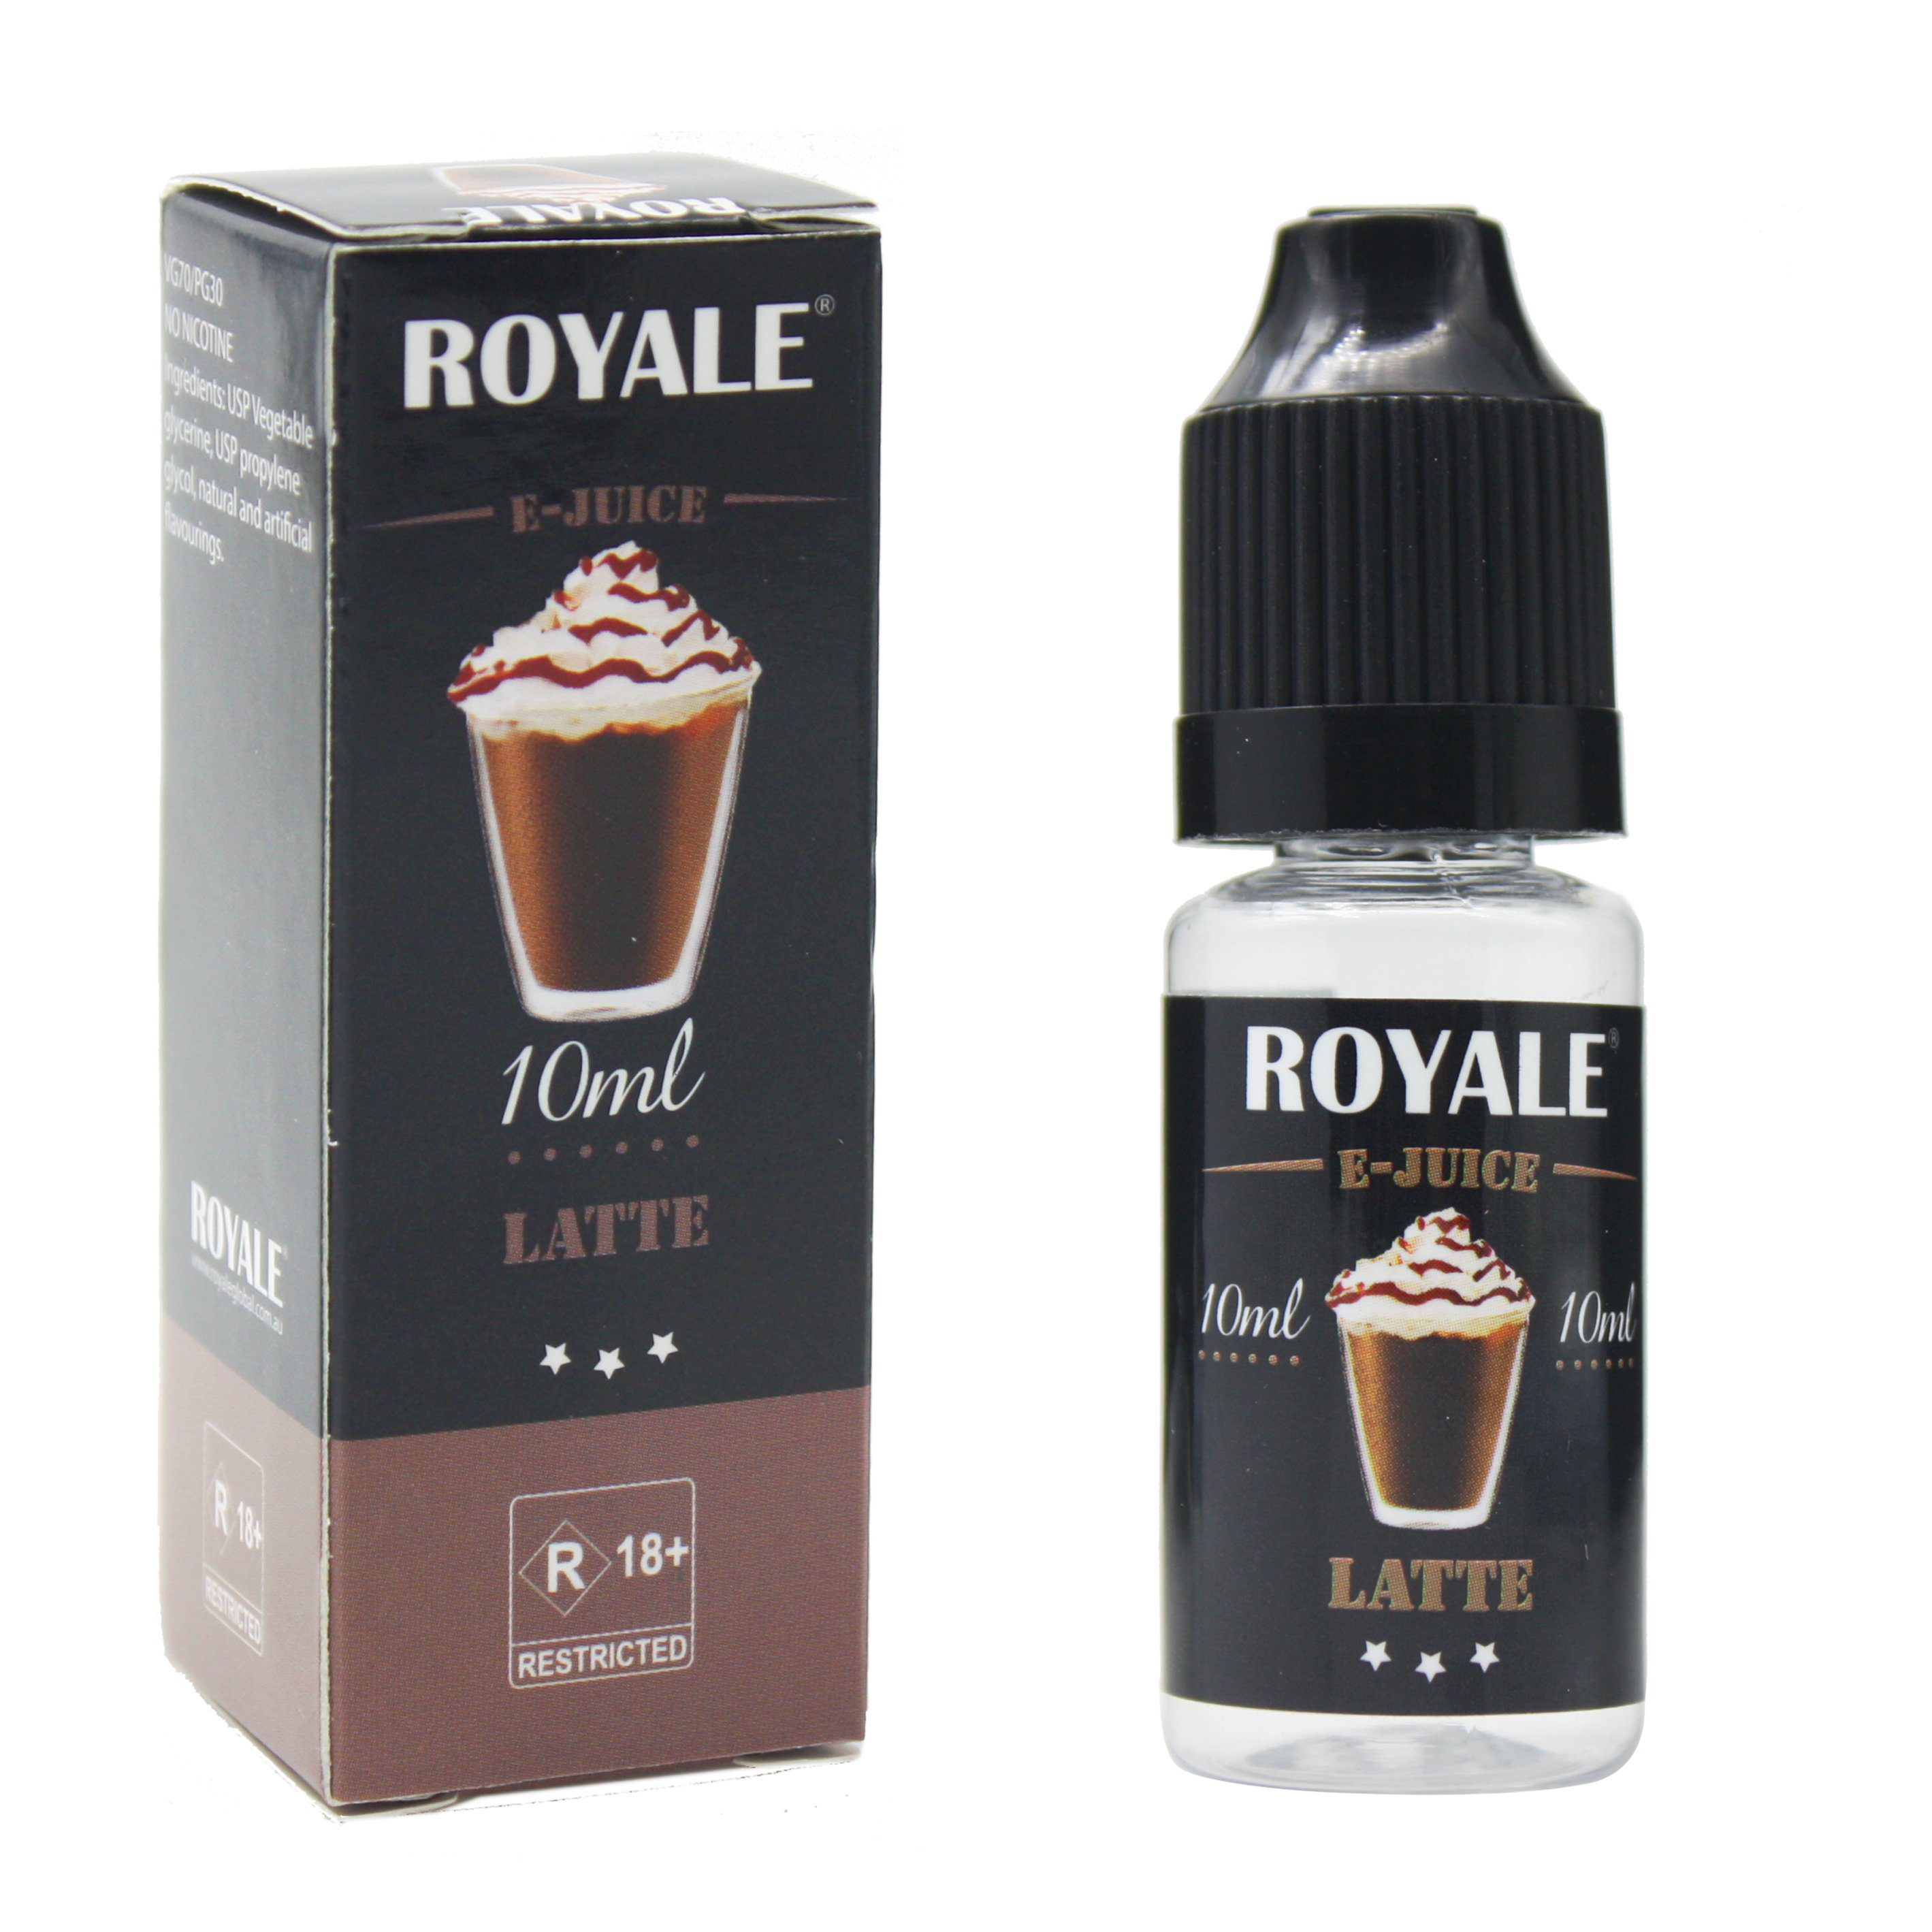 Royale E-Juice - Latte 10ml